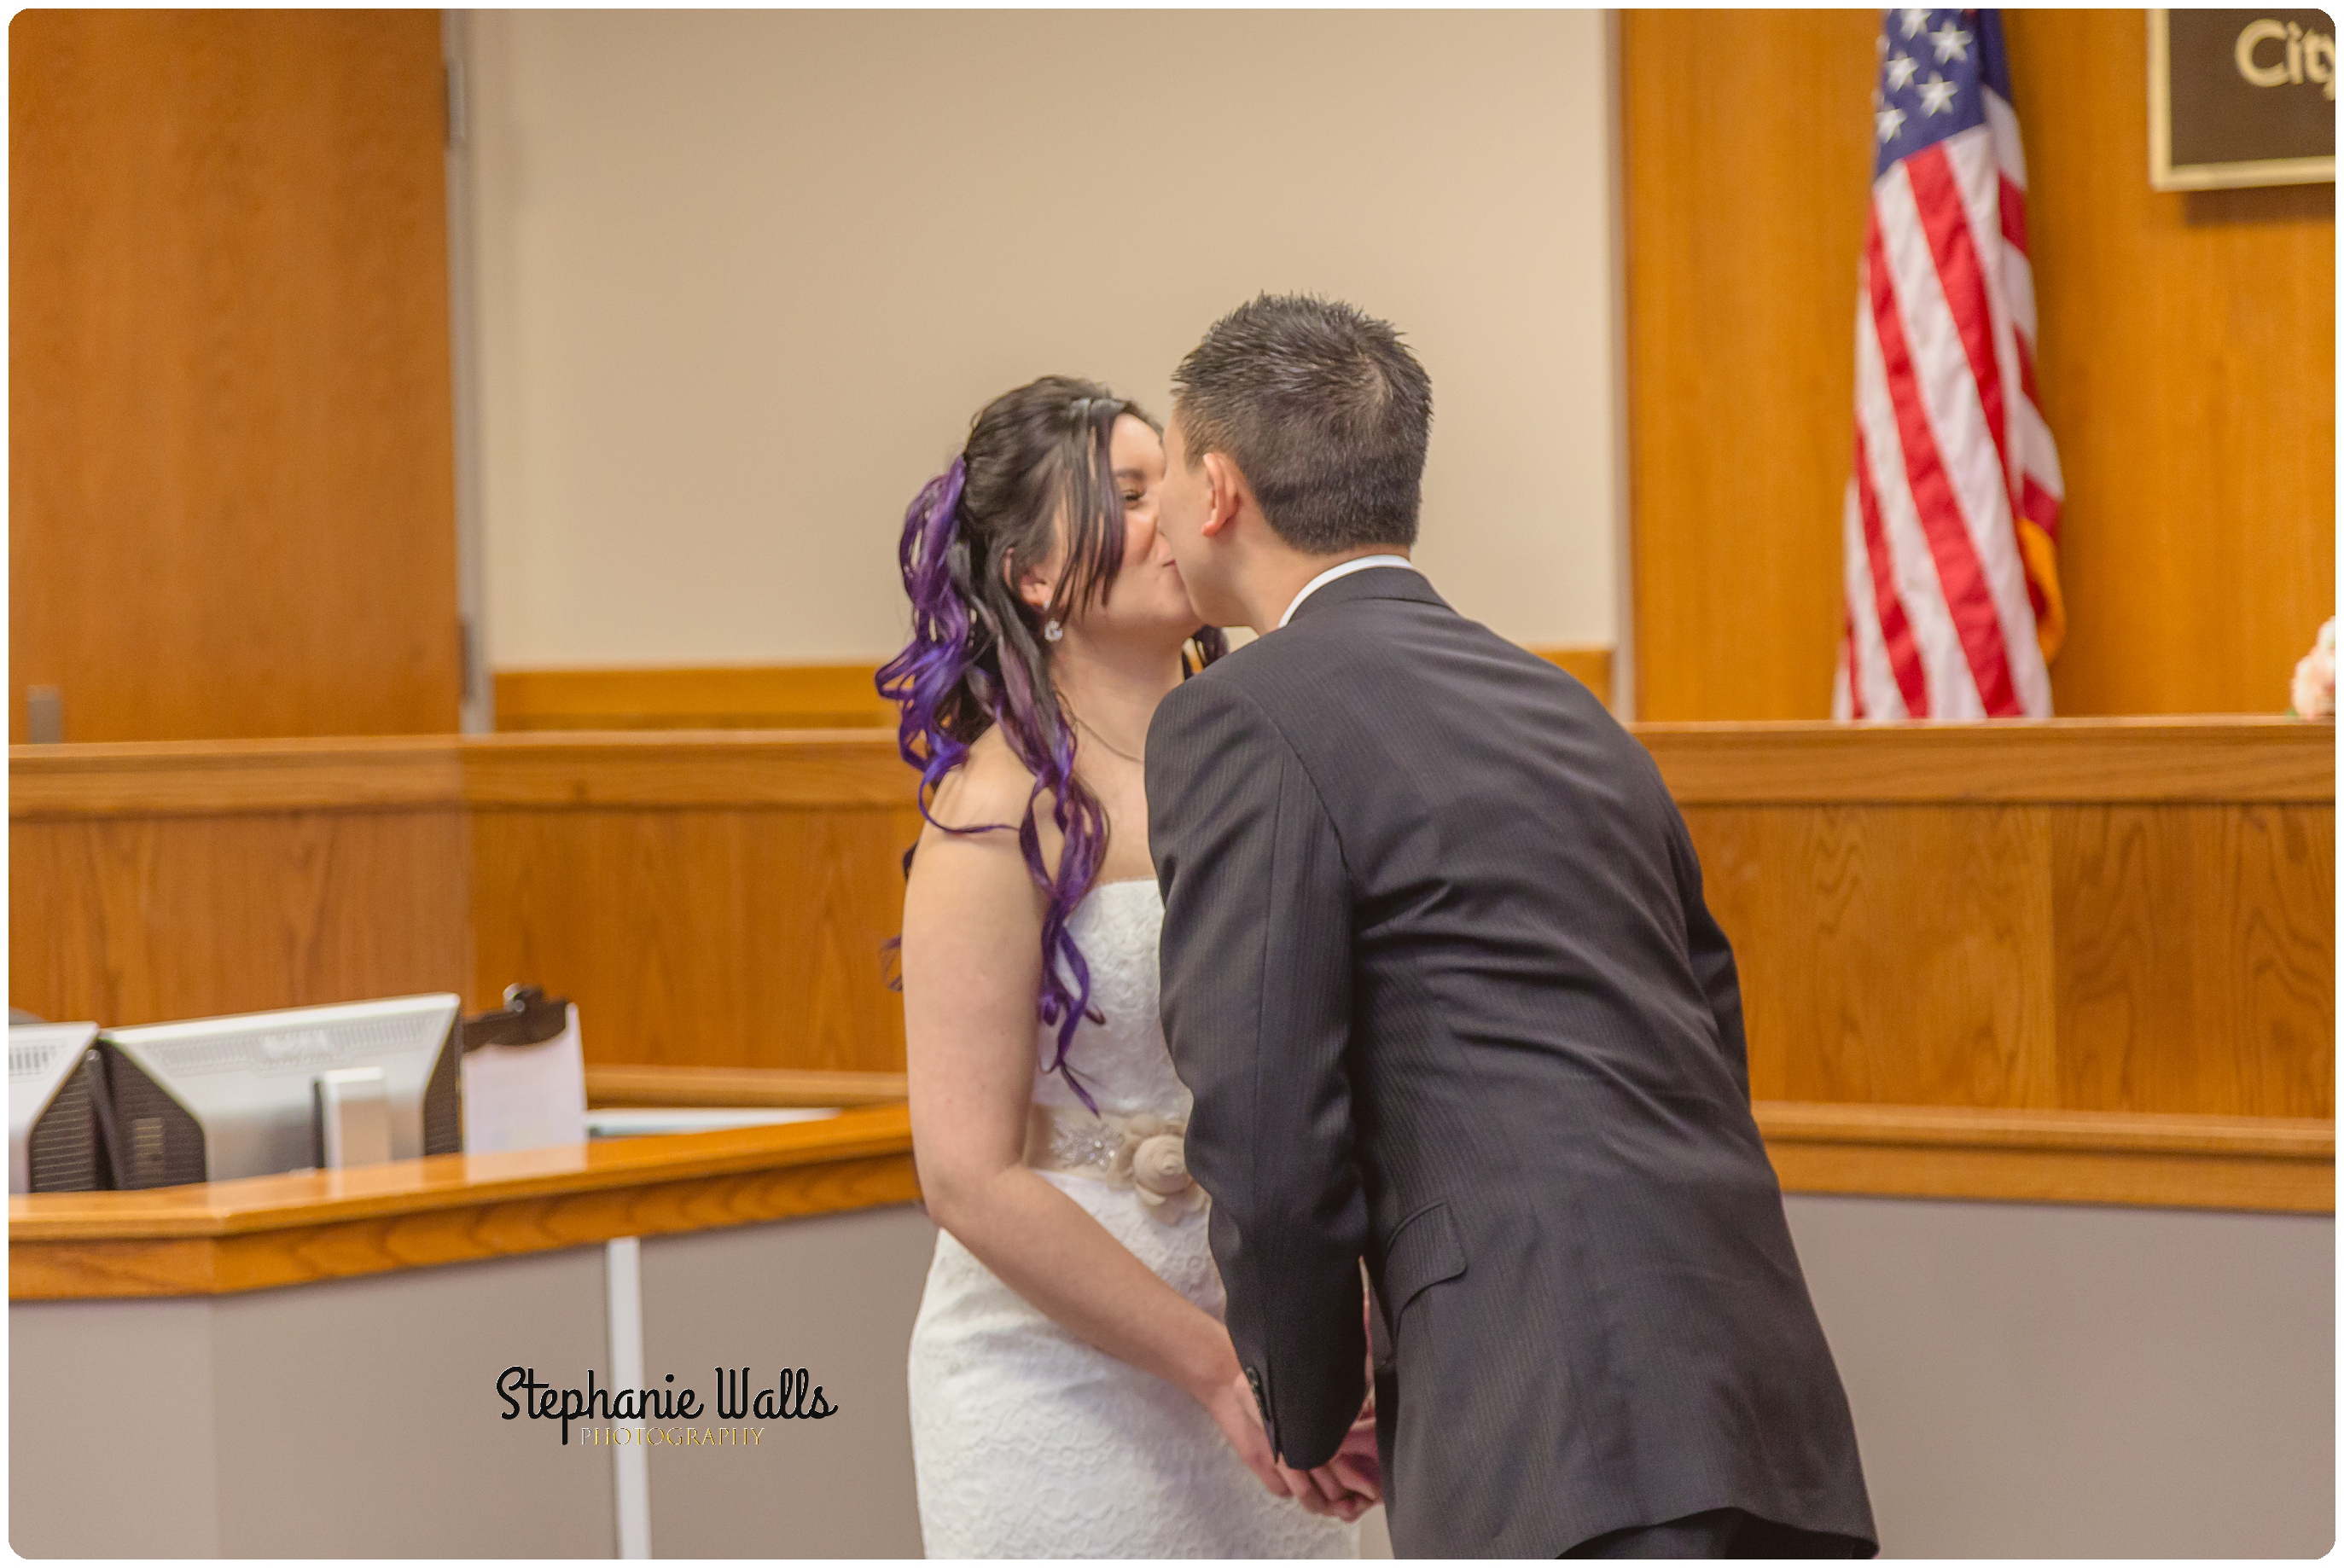 Chan Wedding 061 LAUGHTER AND LACE | BOTHELL COURTHOUSE WEDDING BOTHELL WA